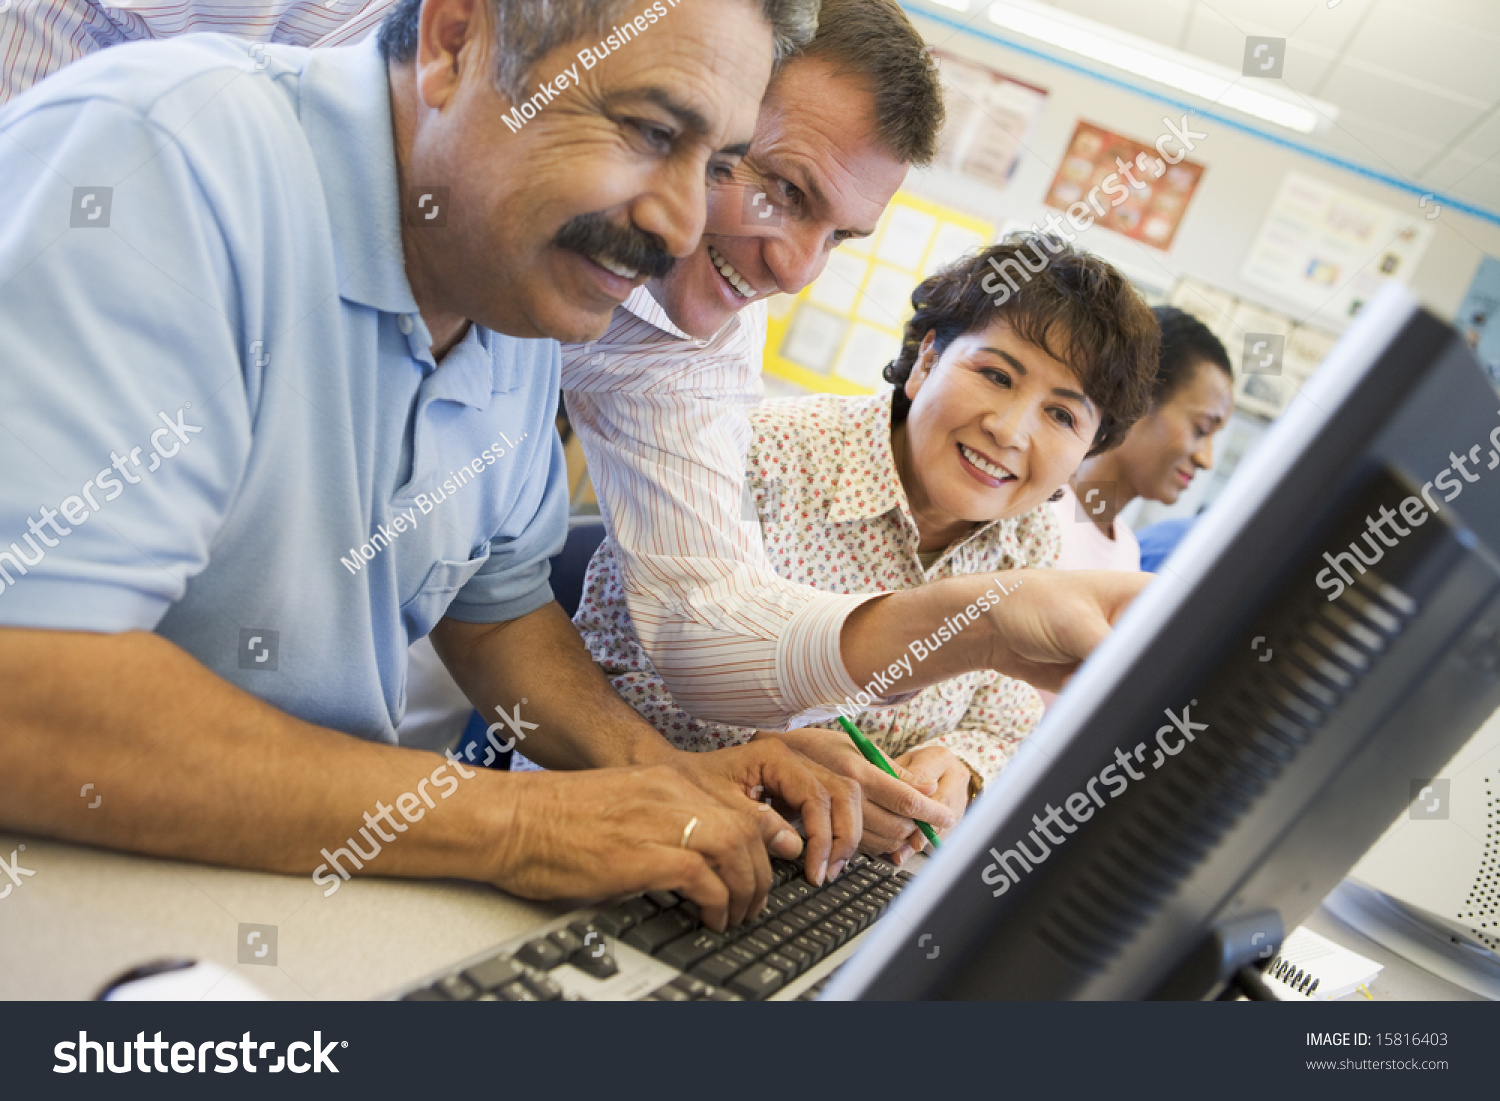 mature students learning computer skills stock photo  mature students learning computer skills preview save to a lightbox